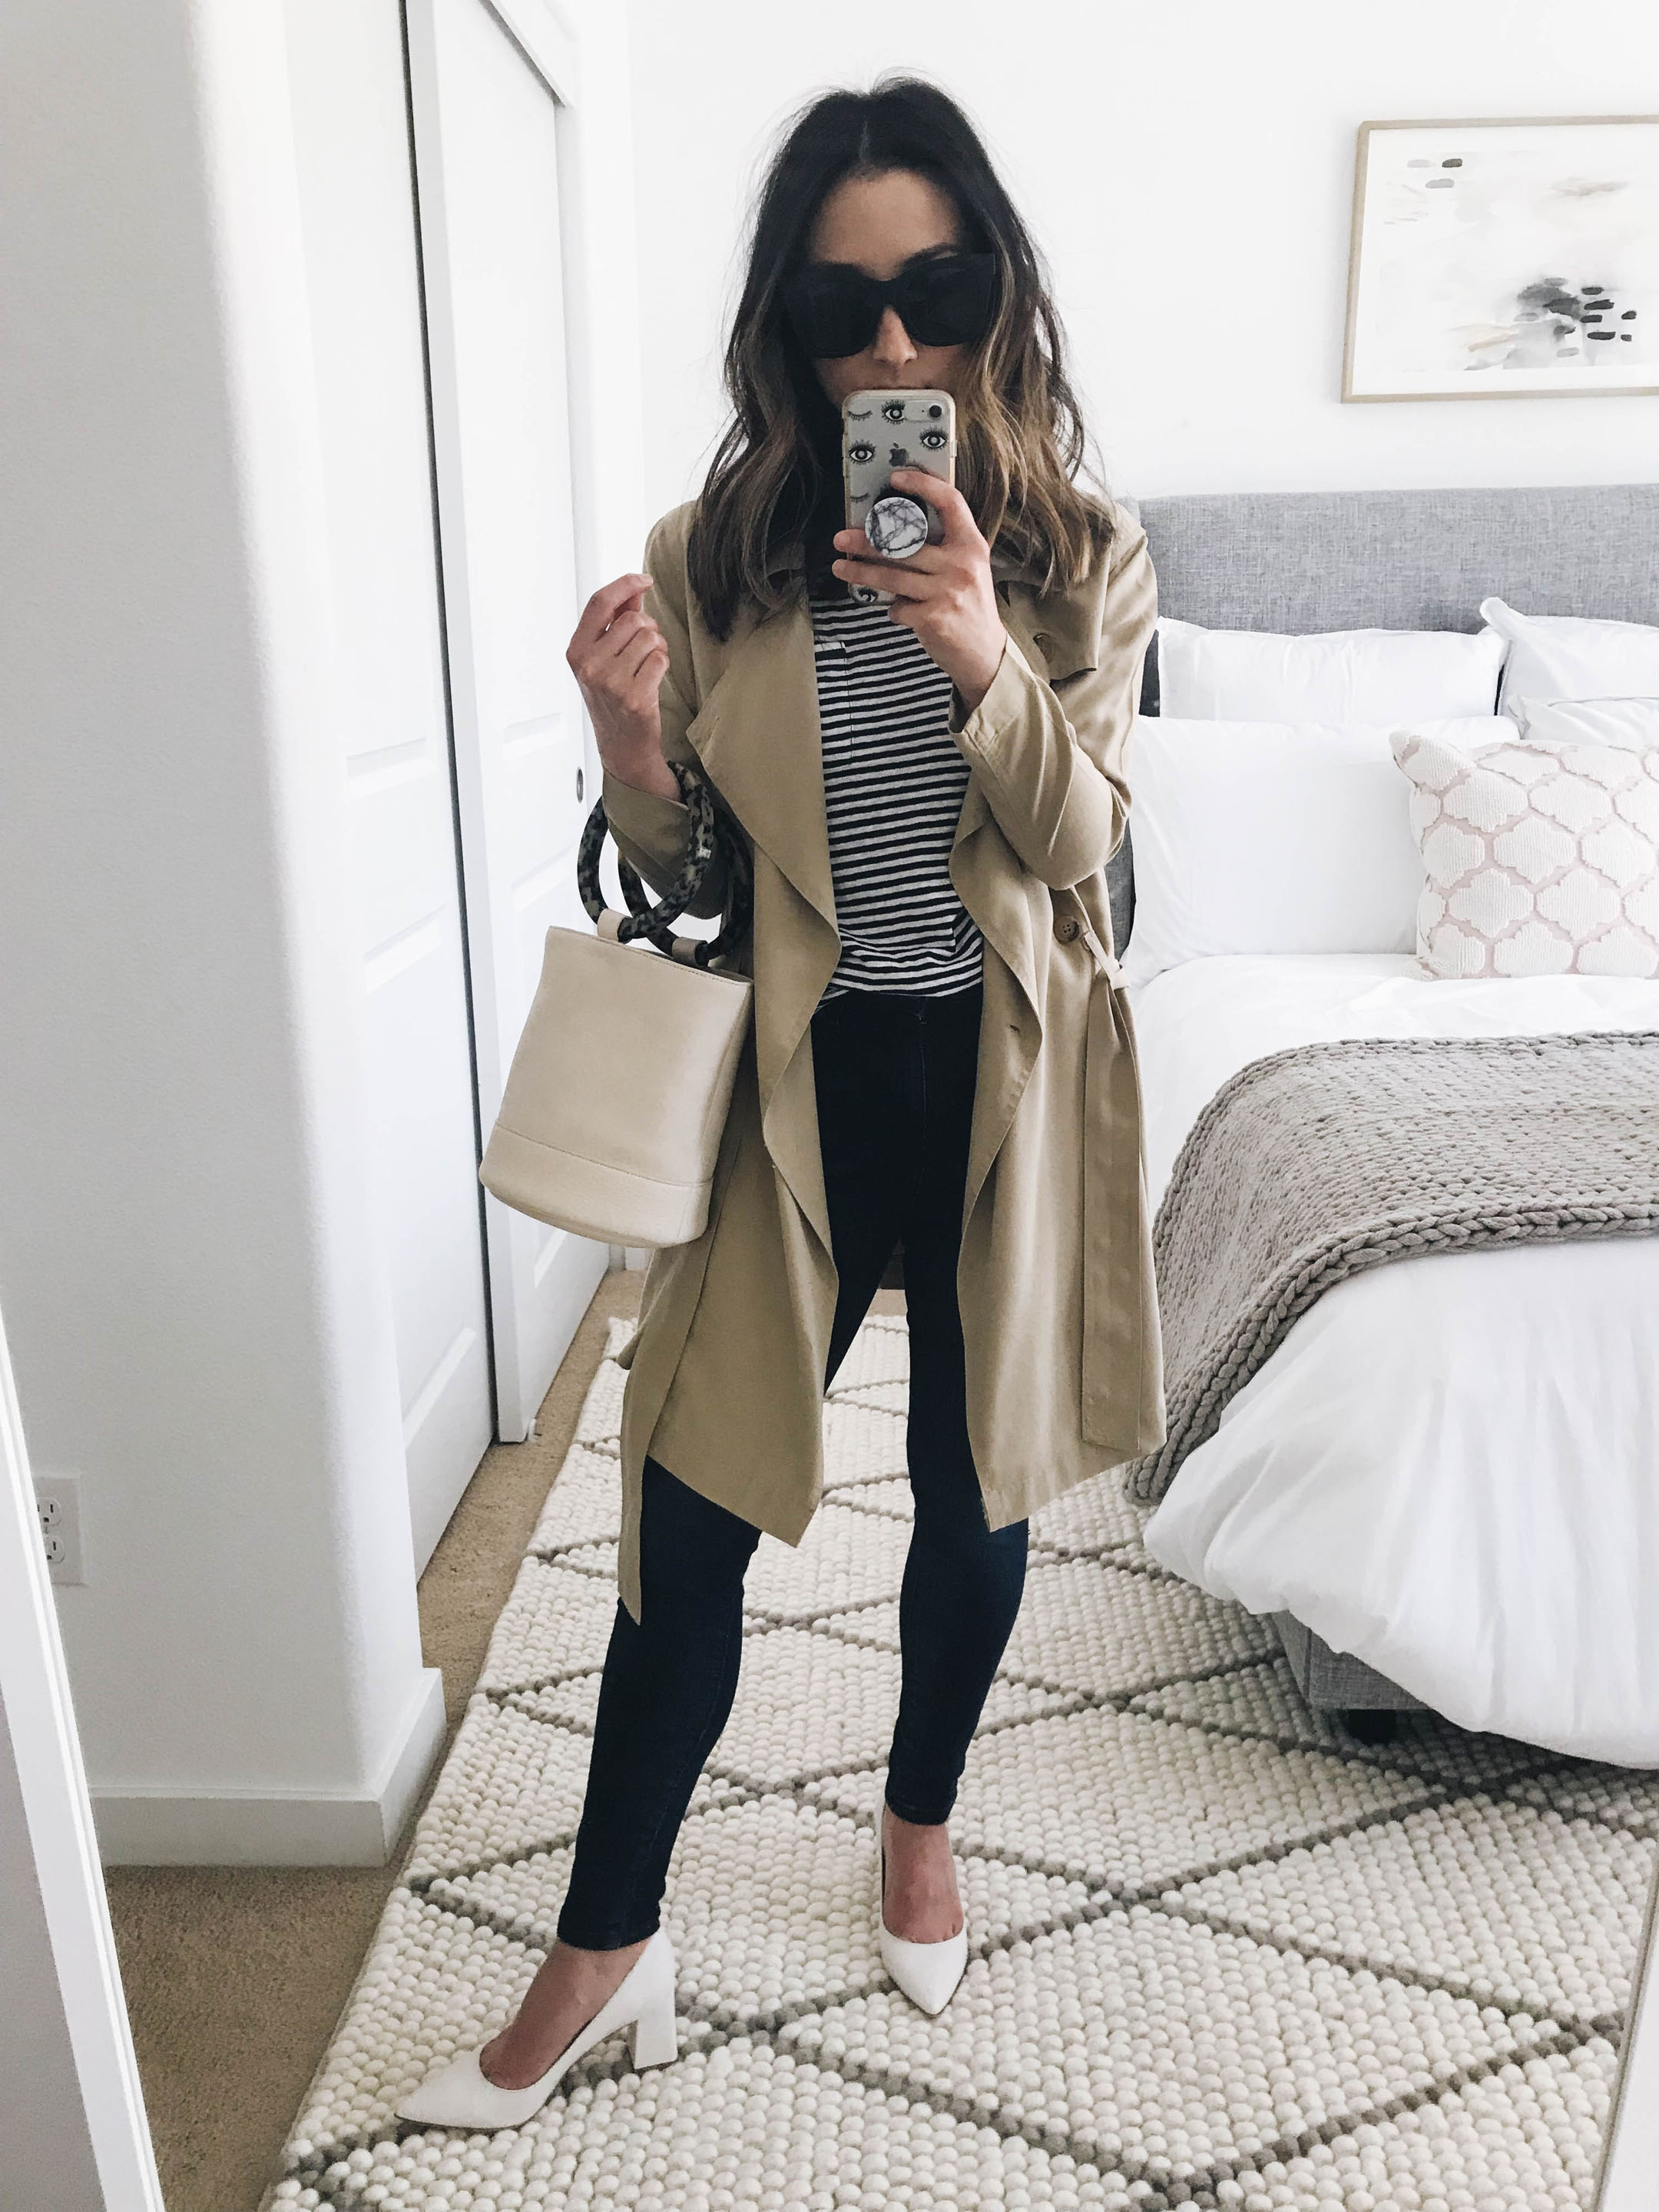 Transitional summer to fall outfits